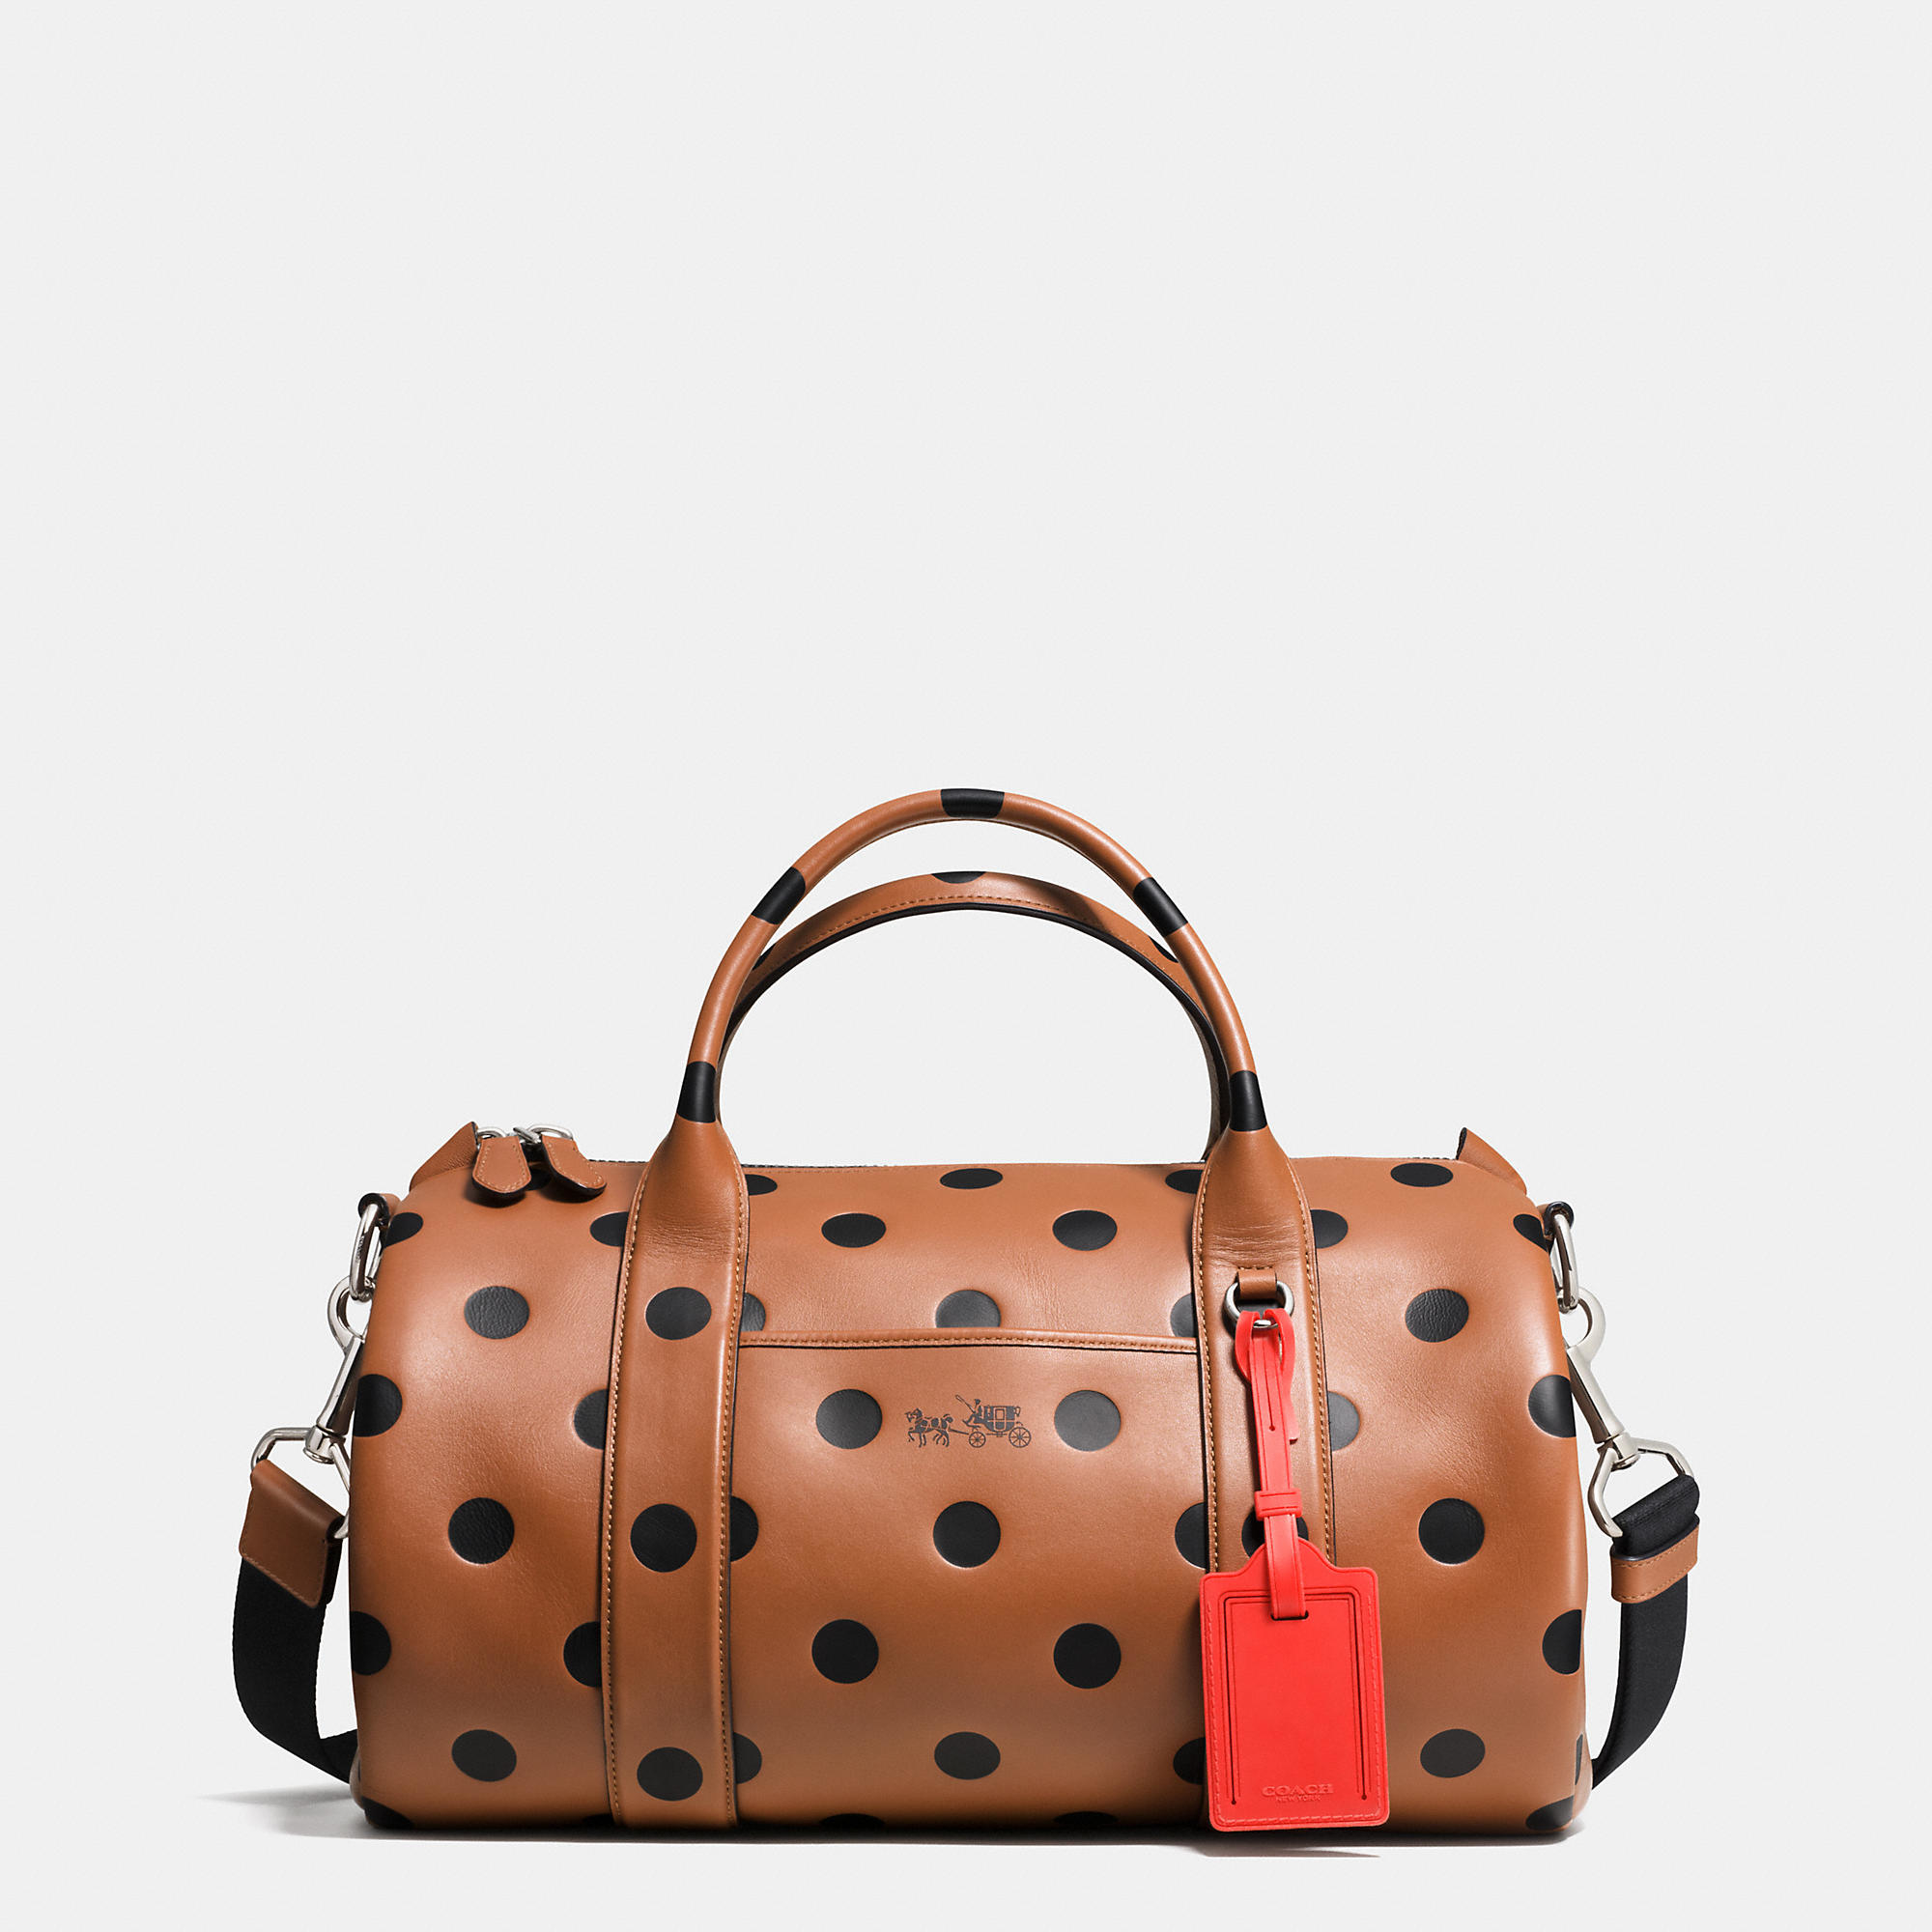 ... promo code for coach designer handbag lyst coach small barrel bag in saddle  dot leather in a8f9821295cc4